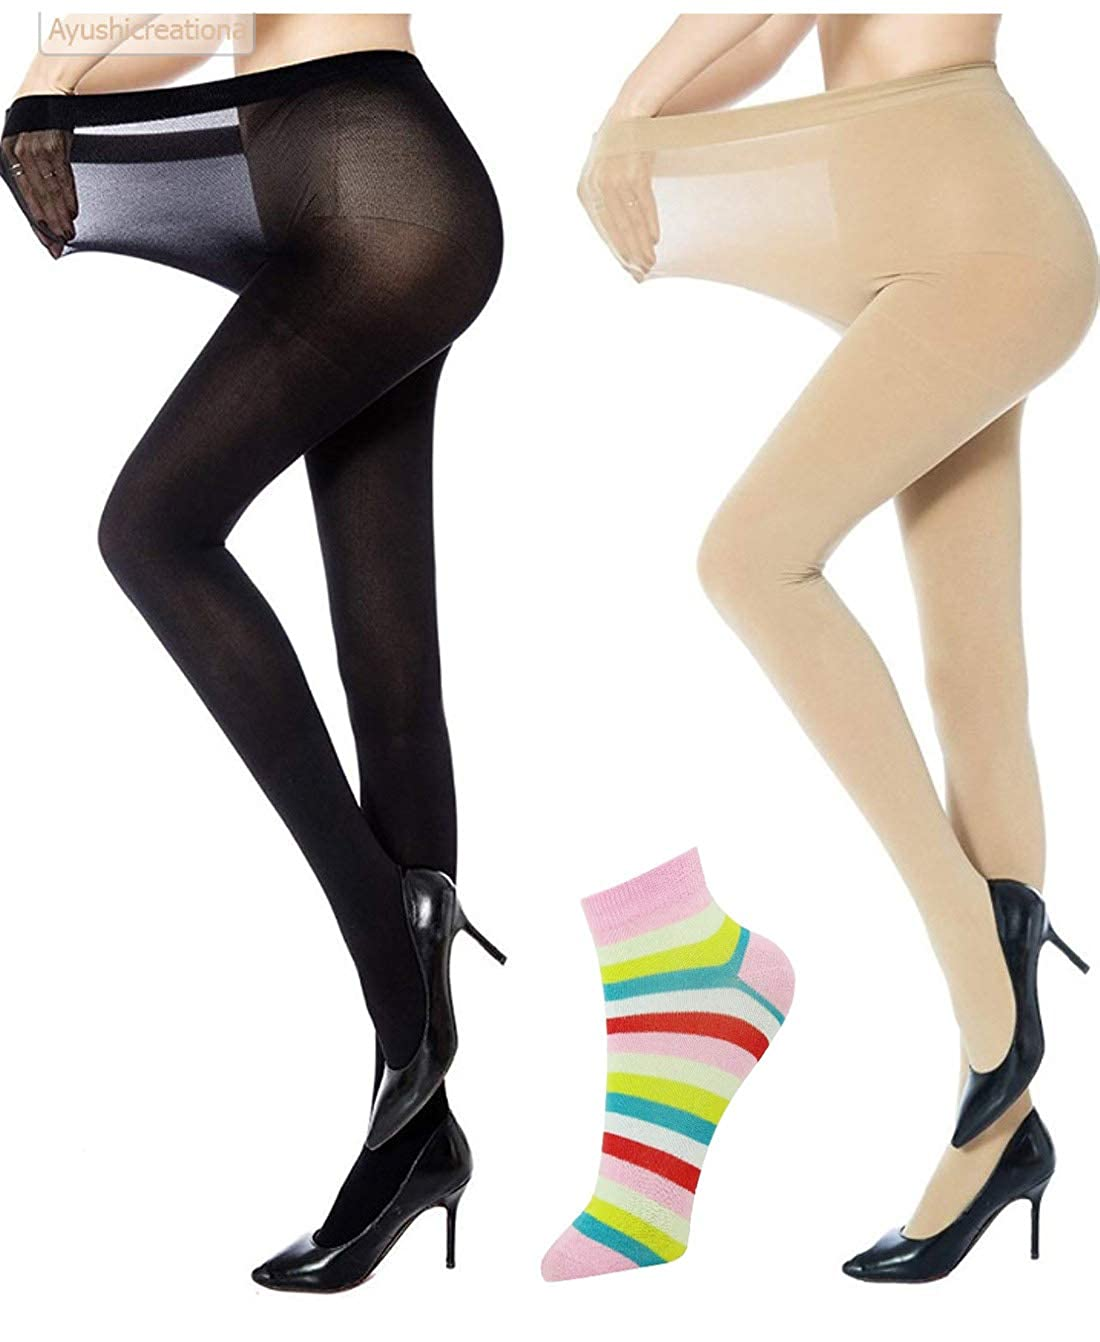 fedec5a6c ayushicreationa Women High Waist Stockings Super Fine Fiber Excellent  Stretch Tights Long Comfort Super Soft Pantyhose (Black and Beige